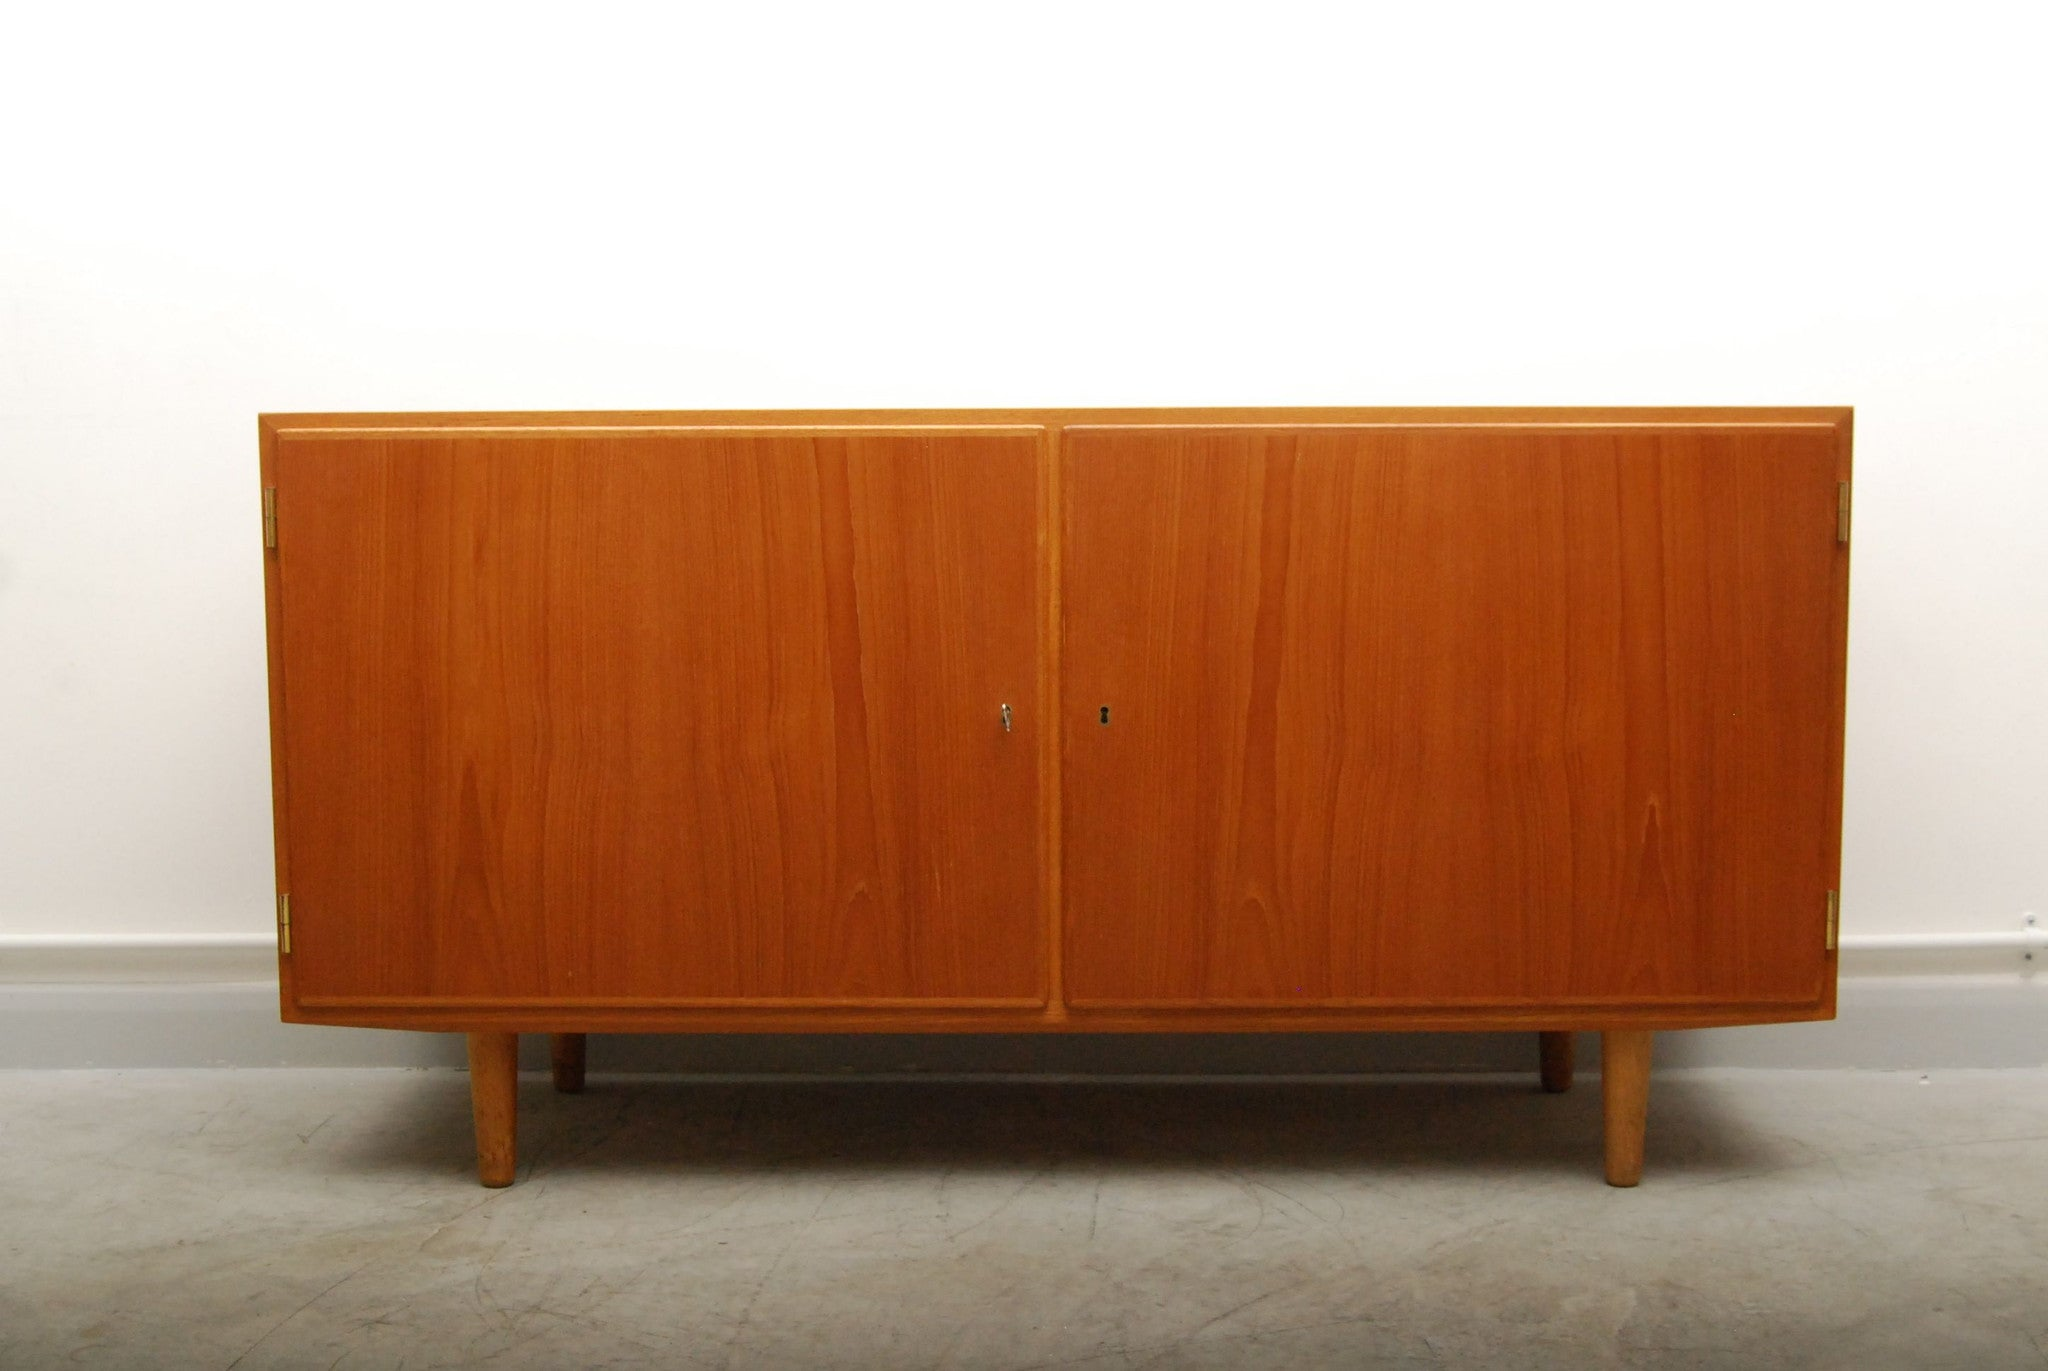 Sideboard by Poul Hundevad